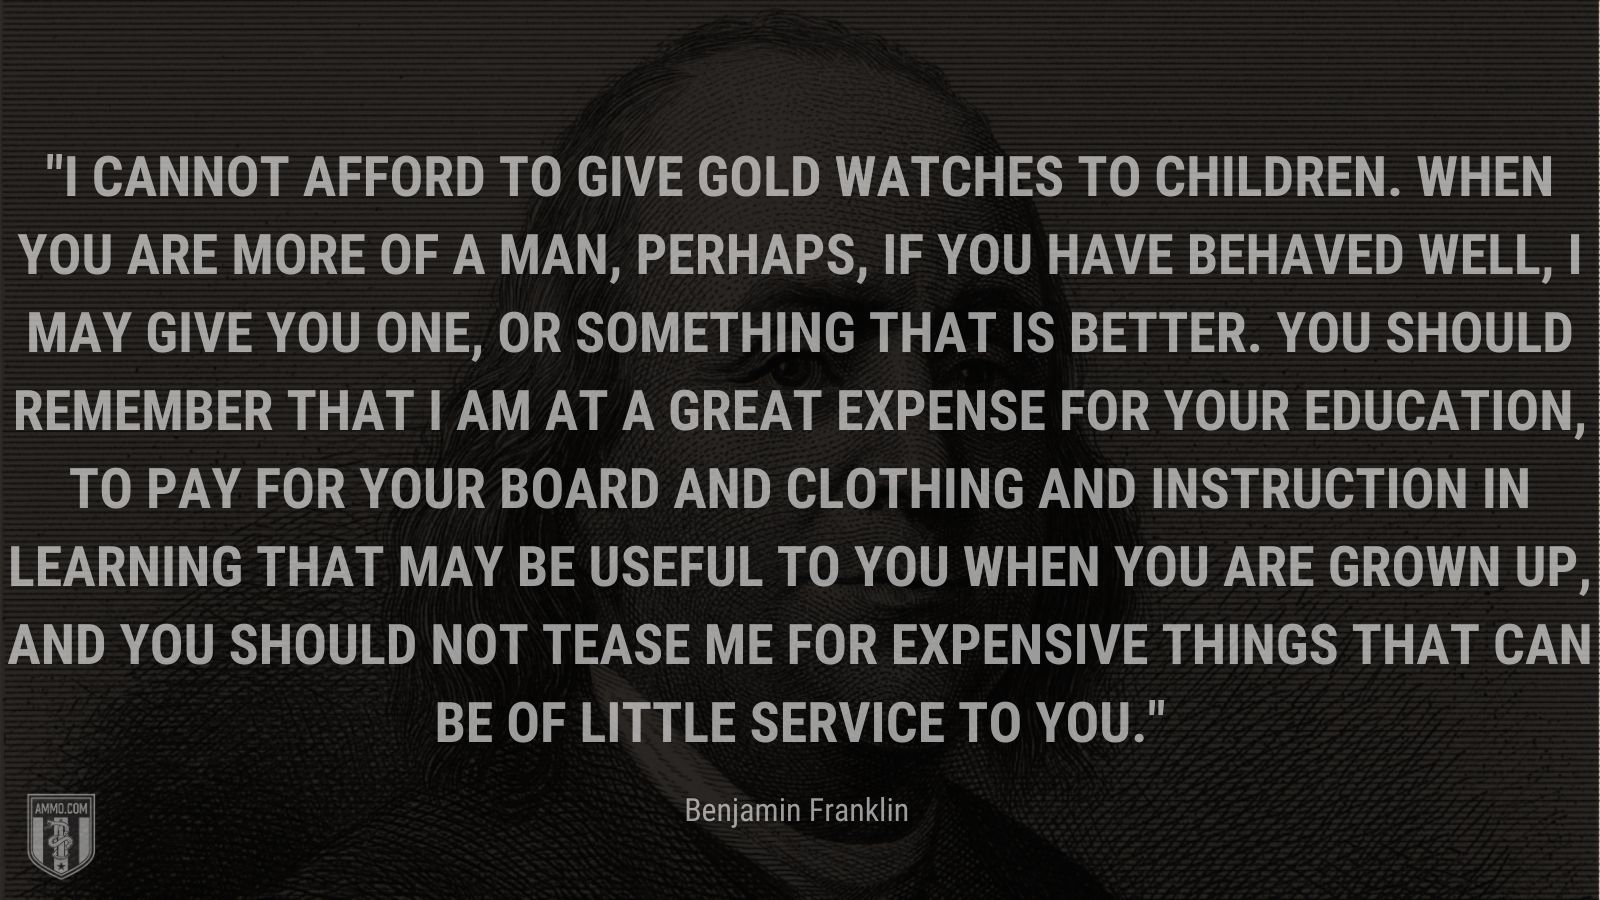 """""""I cannot afford to give gold watches to children. When you are more of a man, perhaps, if you have behaved well, I may give you one, or something that is better. You should remember that I am at a great expense for your education, to pay for your board and clothing and instruction in learning that may be useful to you when you are grown up, and you should not tease me for expensive things that can be of little service to you."""" - Benjamin Franklin"""